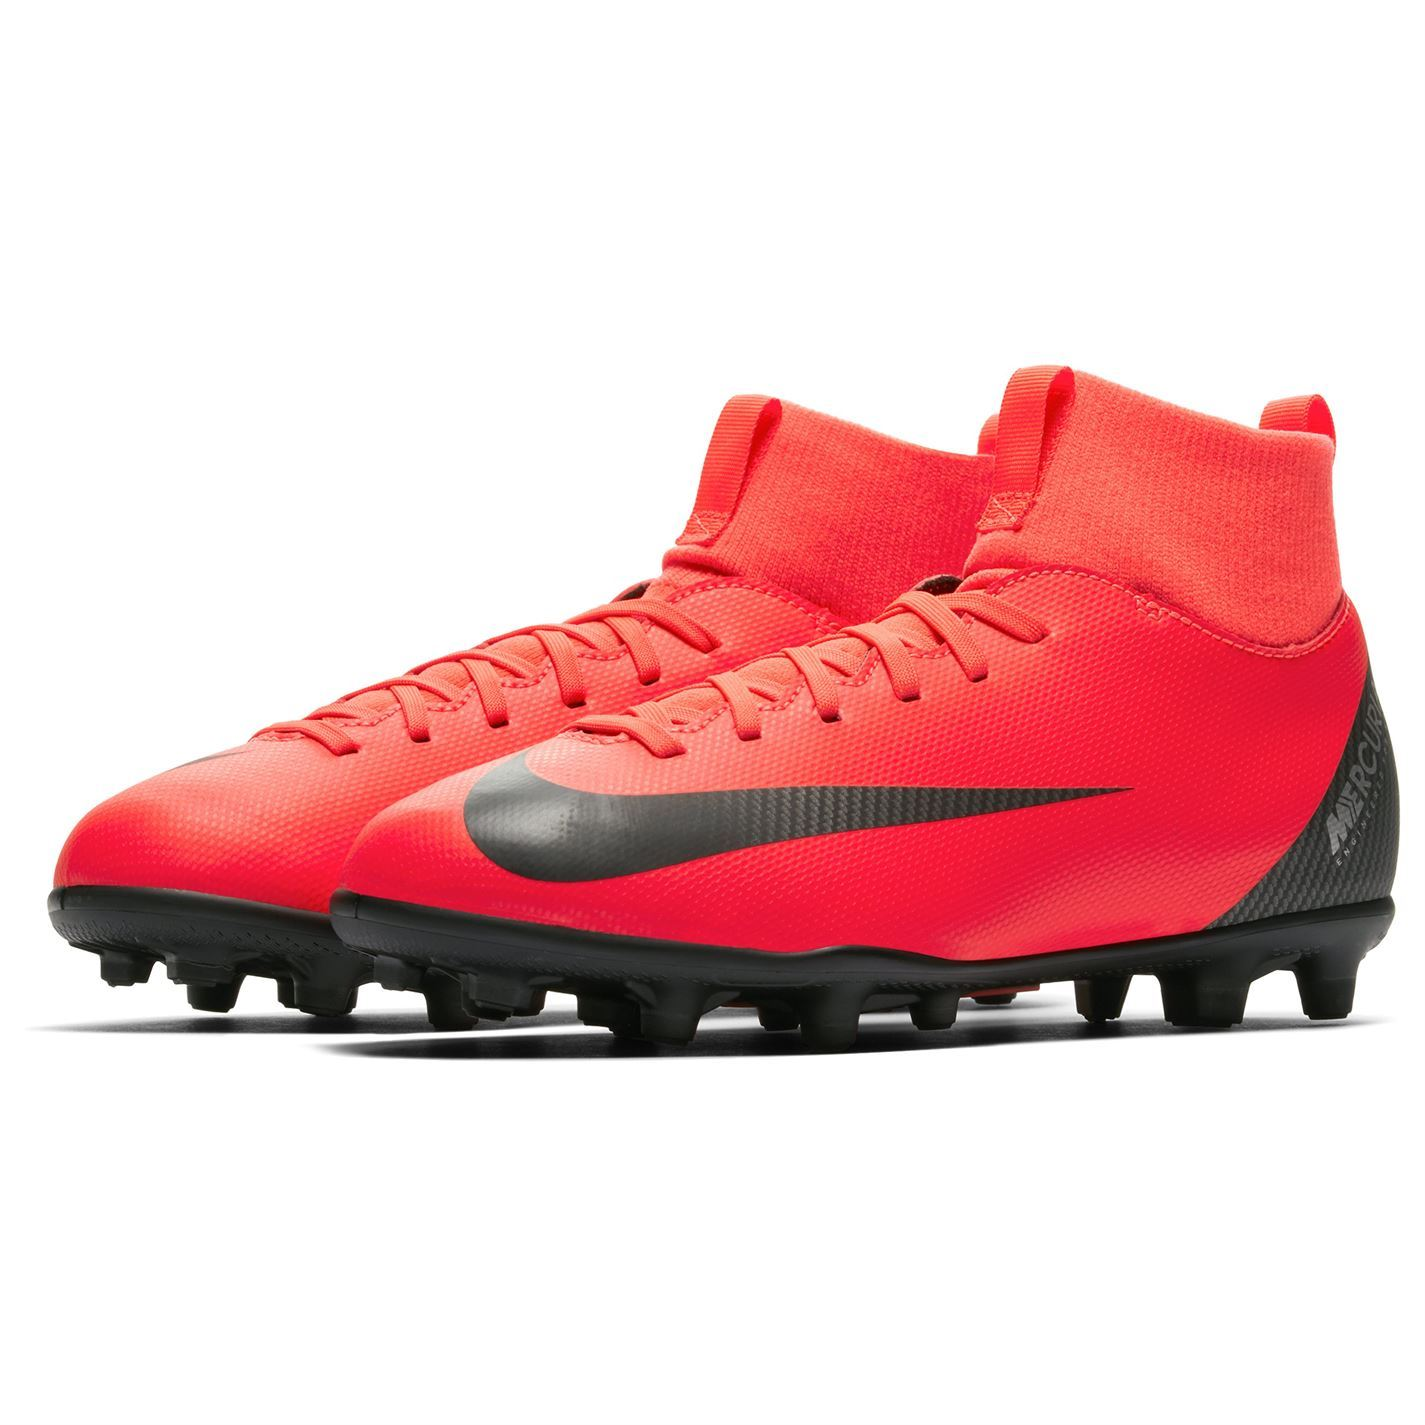 5965a7c01f1 ... Nike Mercurial Superfly Club CR7 FG Football Boots Juniors Red/Blk  Soccer Cleats ...